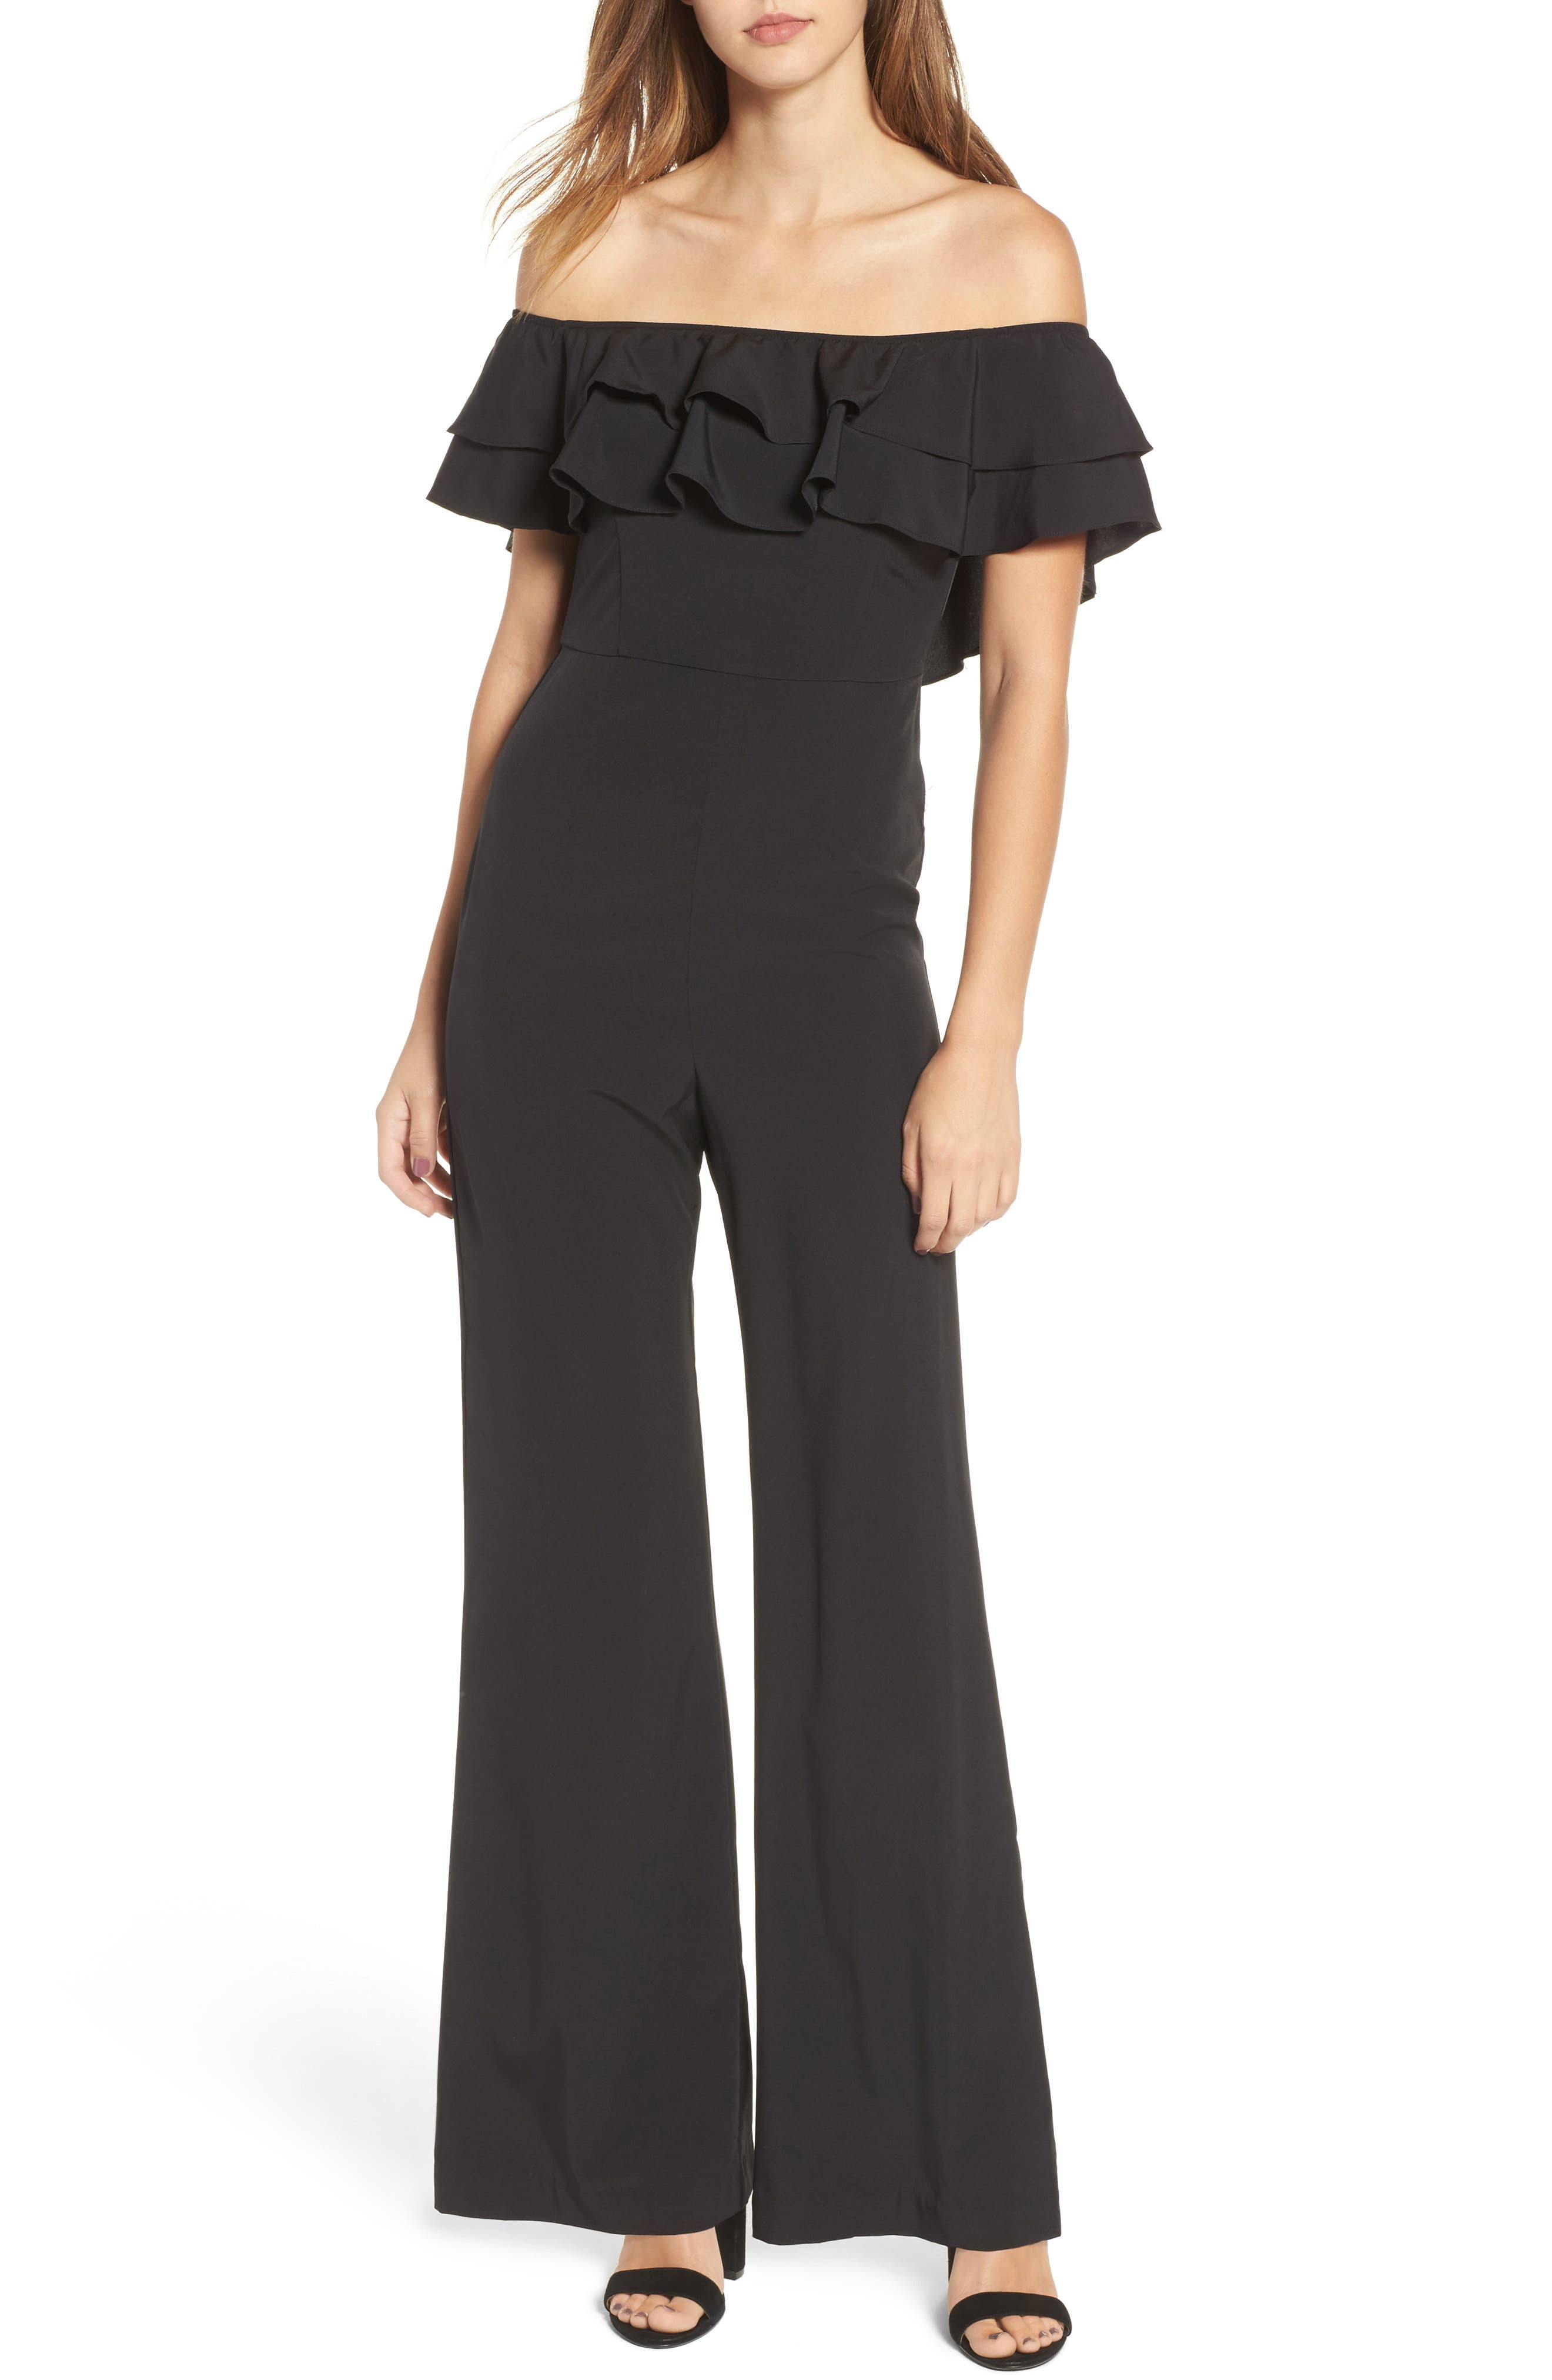 Alternate Image 1 Selected - Socialite Ruffle Front Jumpsuit